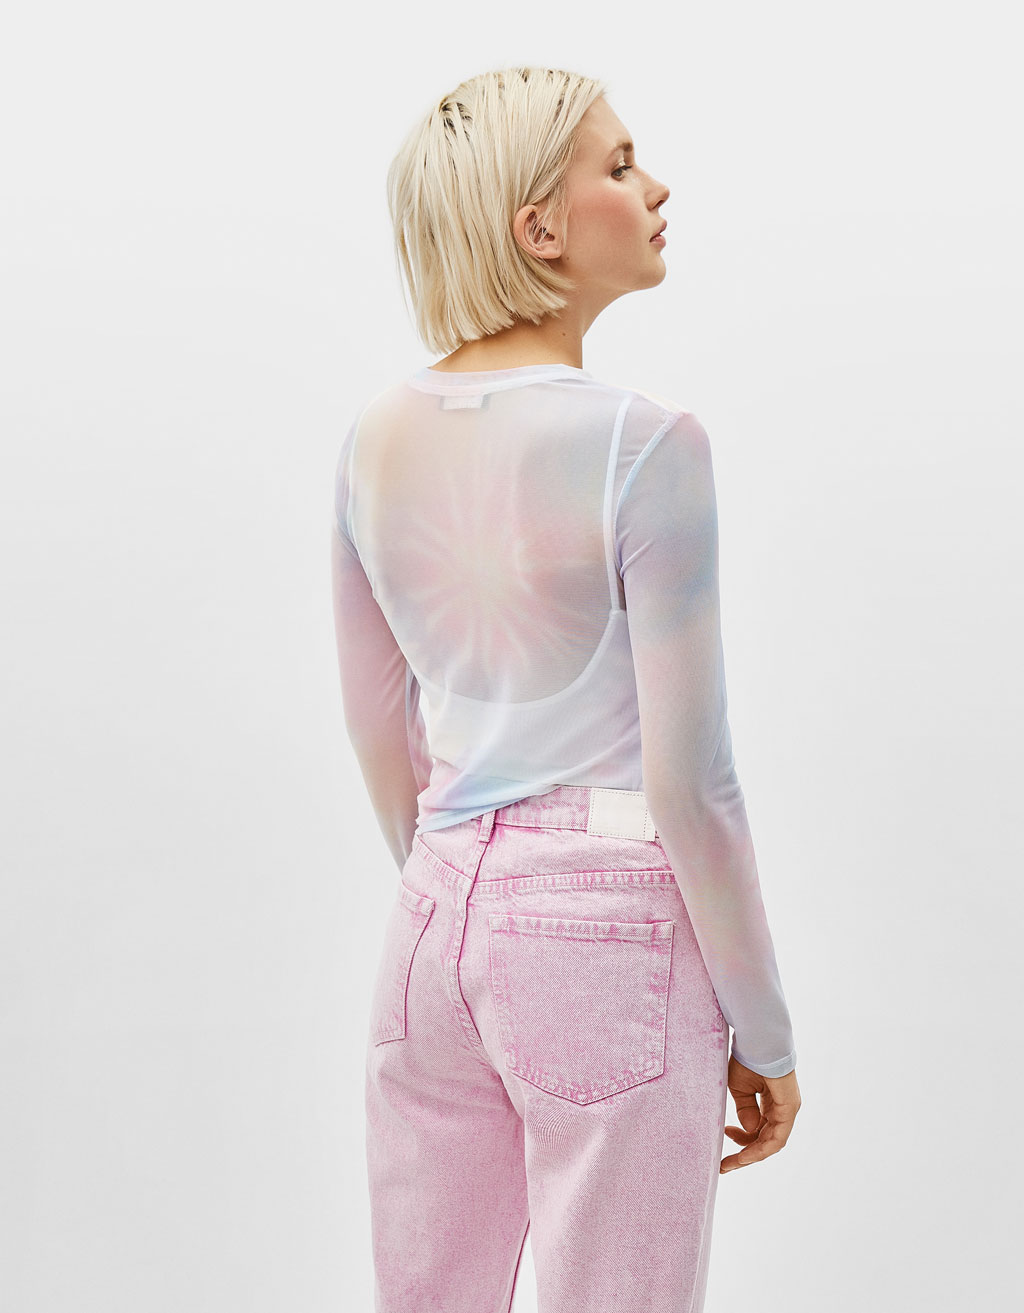 Bershka SS 2019 - Pastel Colours from the 80's - fashion -